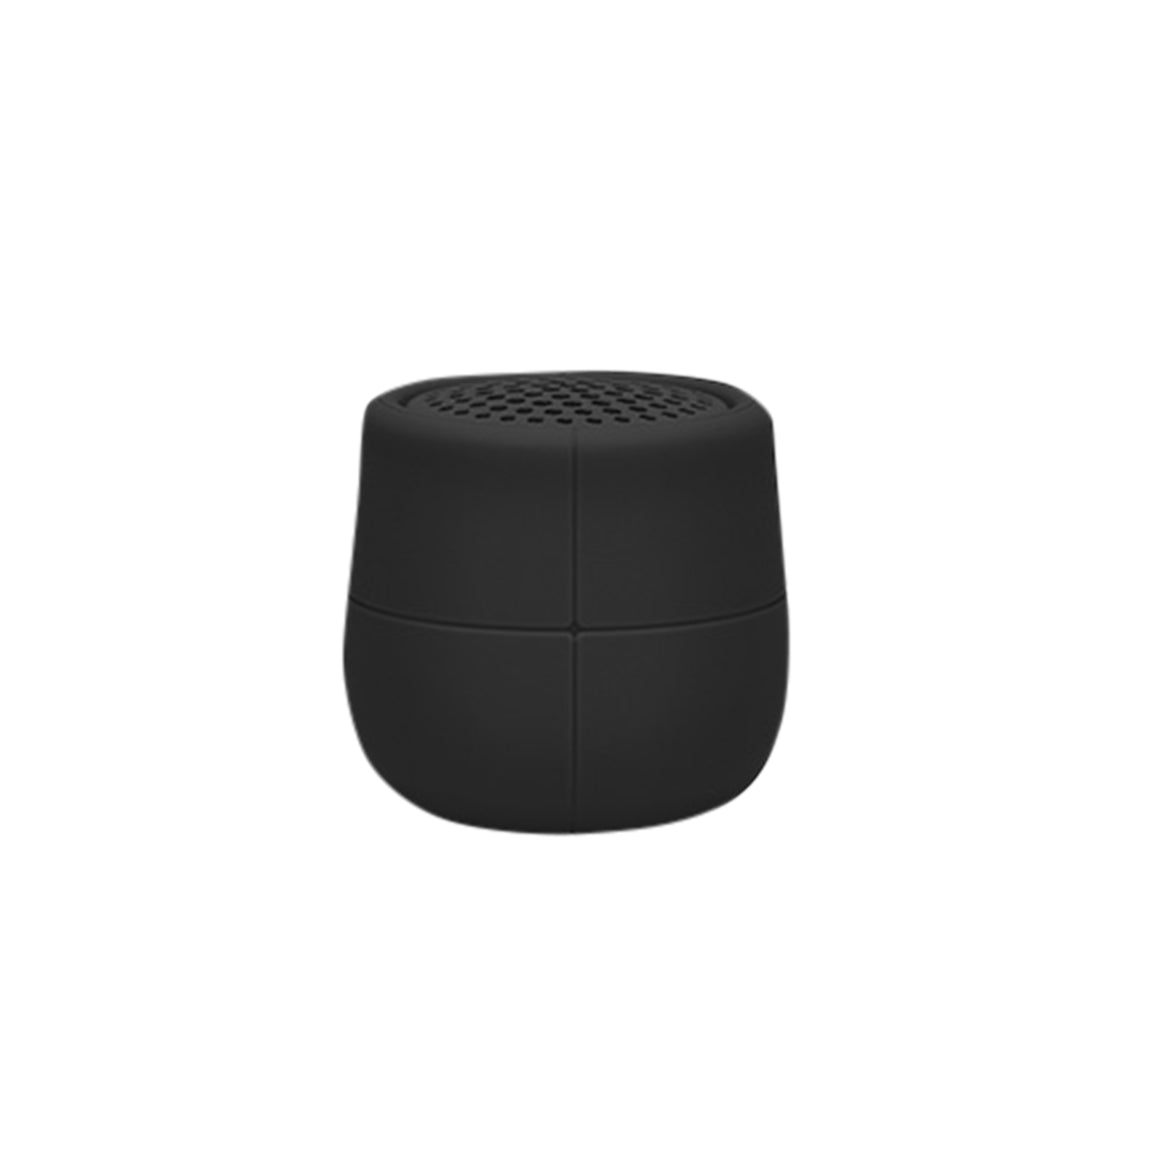 Mino Water Resistant Speaker in Black